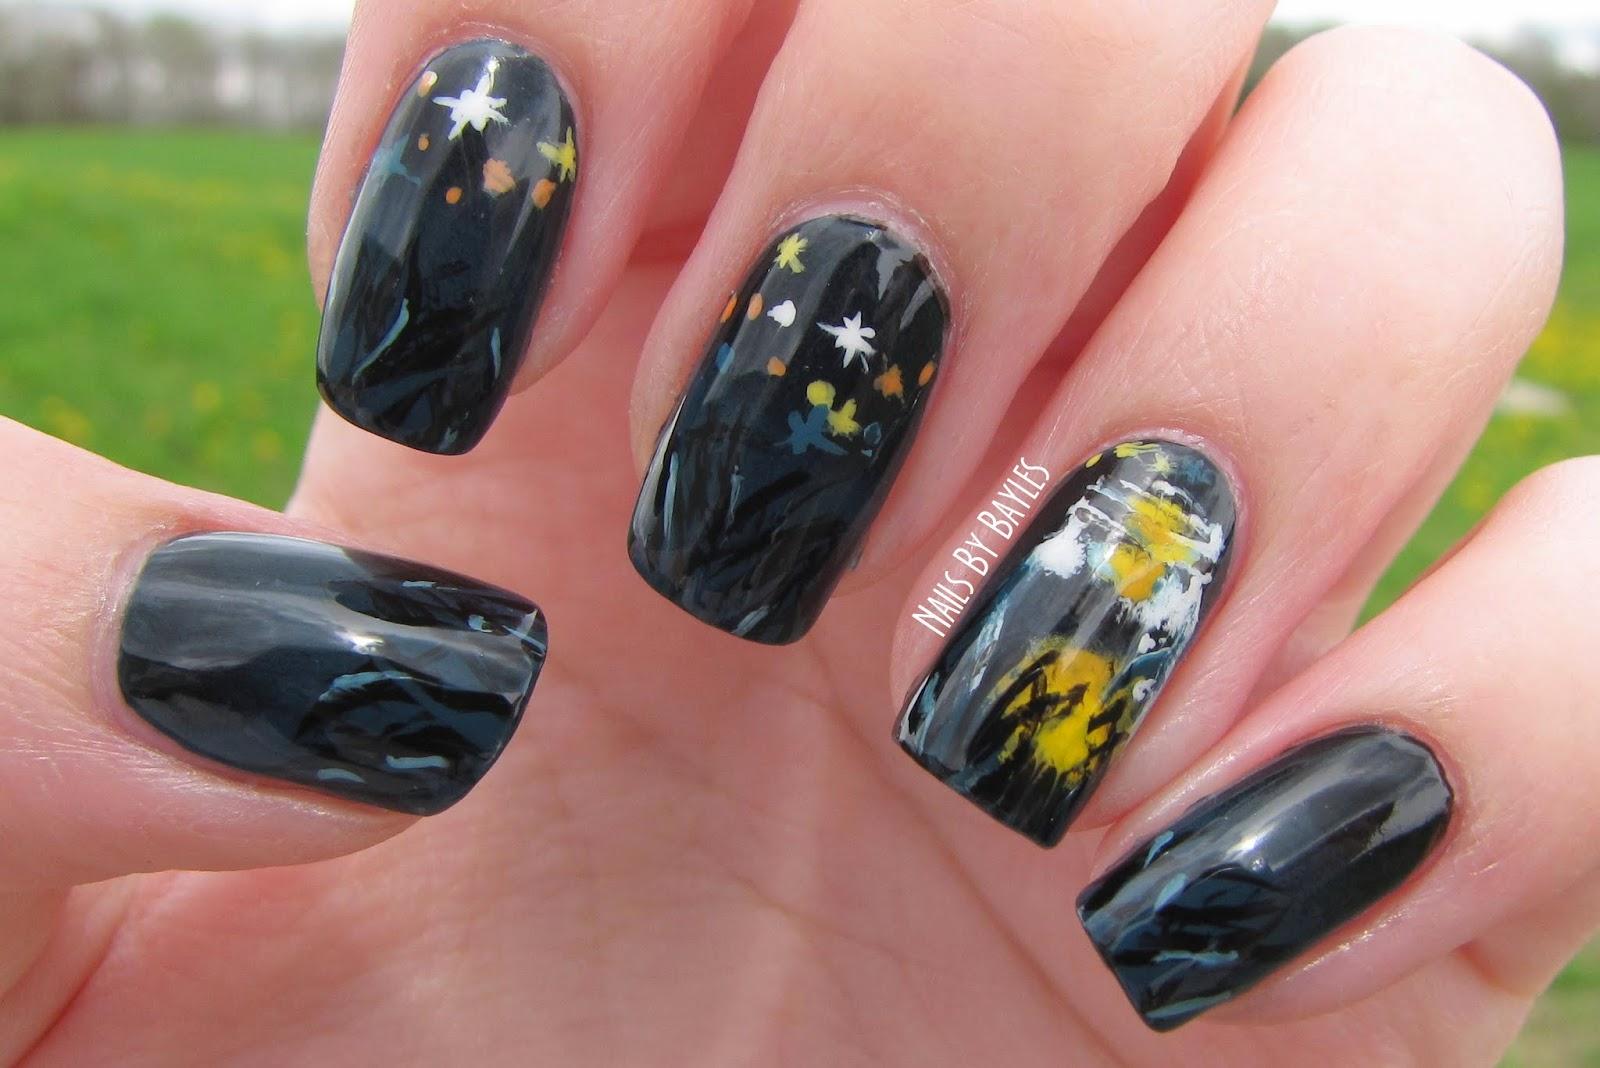 Nails I Got The Idea To Paint Fireflies In A Jar Looked For Picture And Found Perfect One You Can Find It By Searching Lightning Bugs